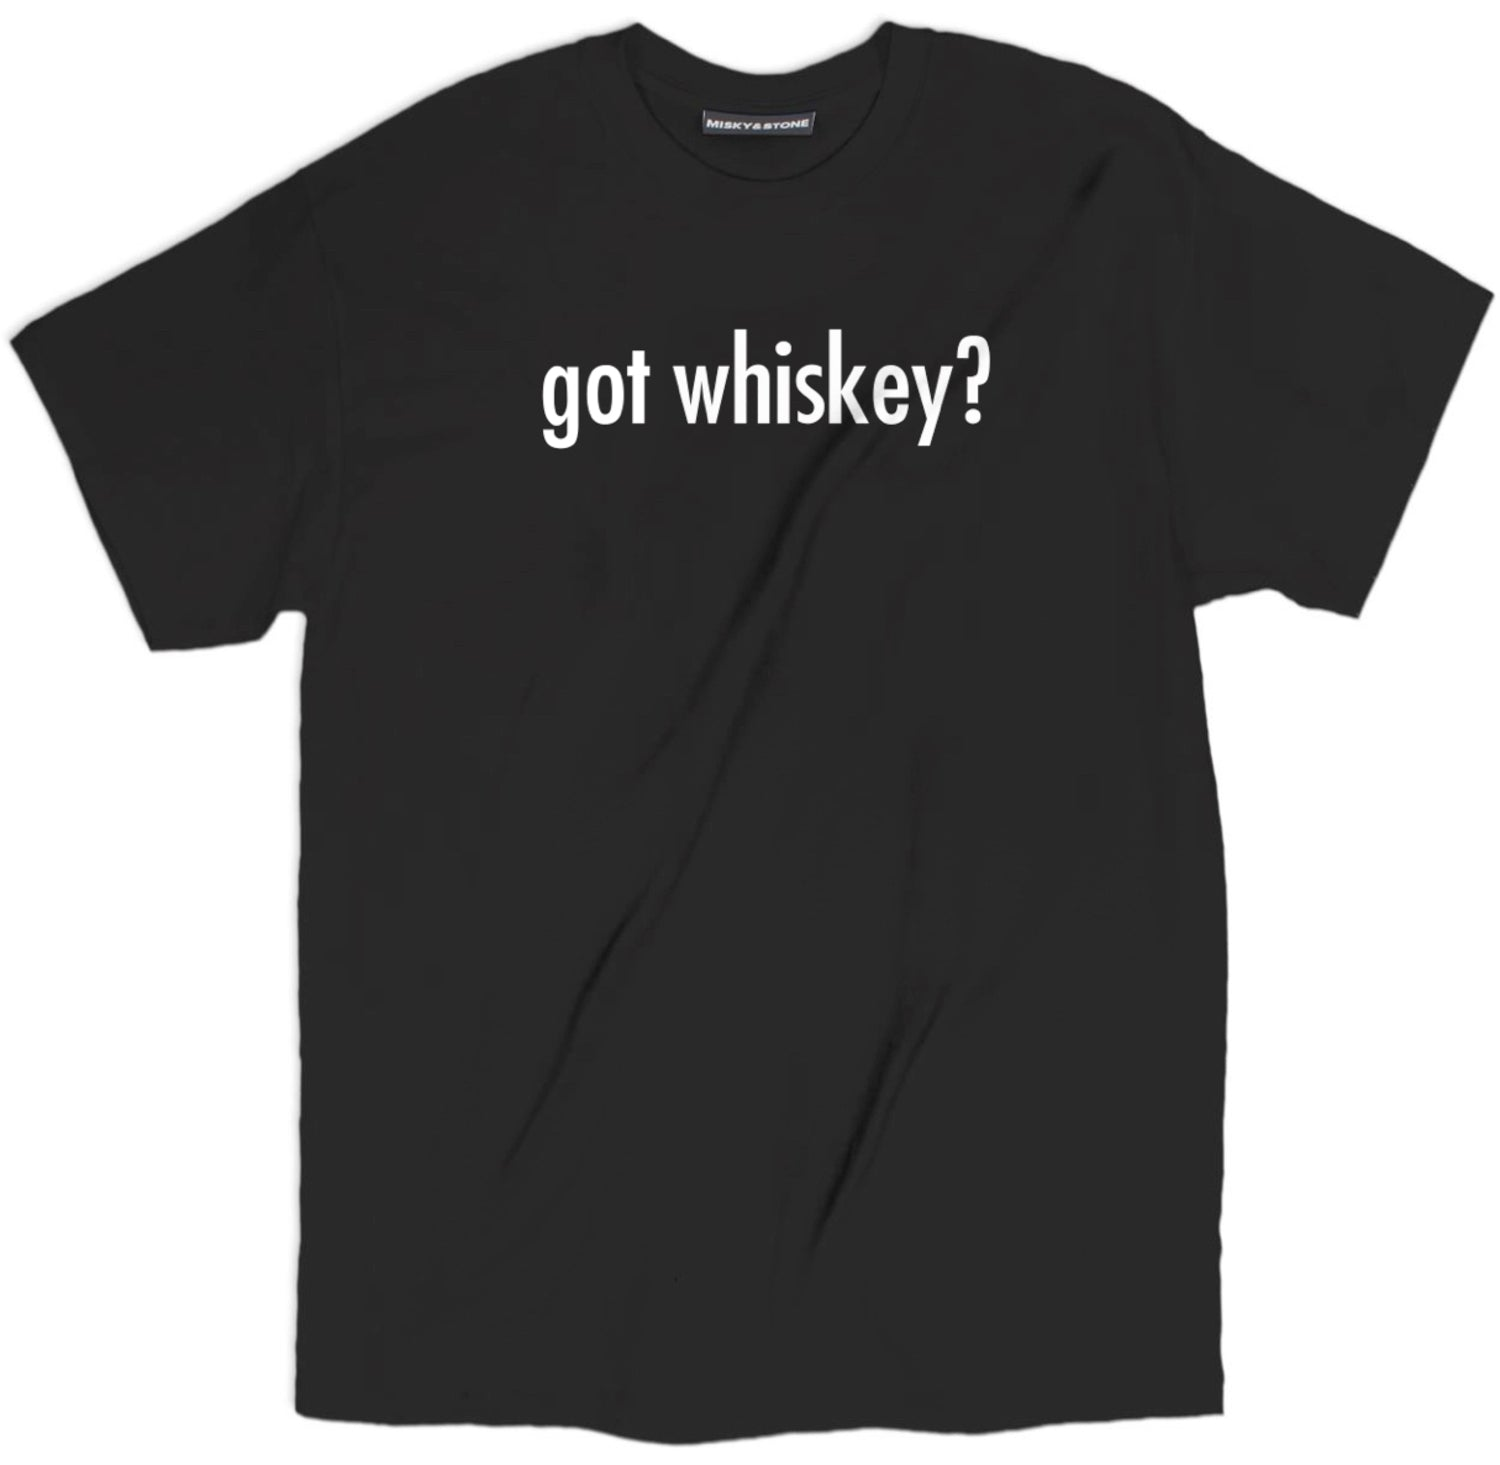 got whiskey shirt, logo parody shirt, whiskey shirt, jameson t shirt, whiskey tee shirts, jack daniels shirt, whiskey and yoga shirt, fireball whiskey shirt, whiskey helps shirt, whiskey made me do it shirt, funny whiskey shirt,